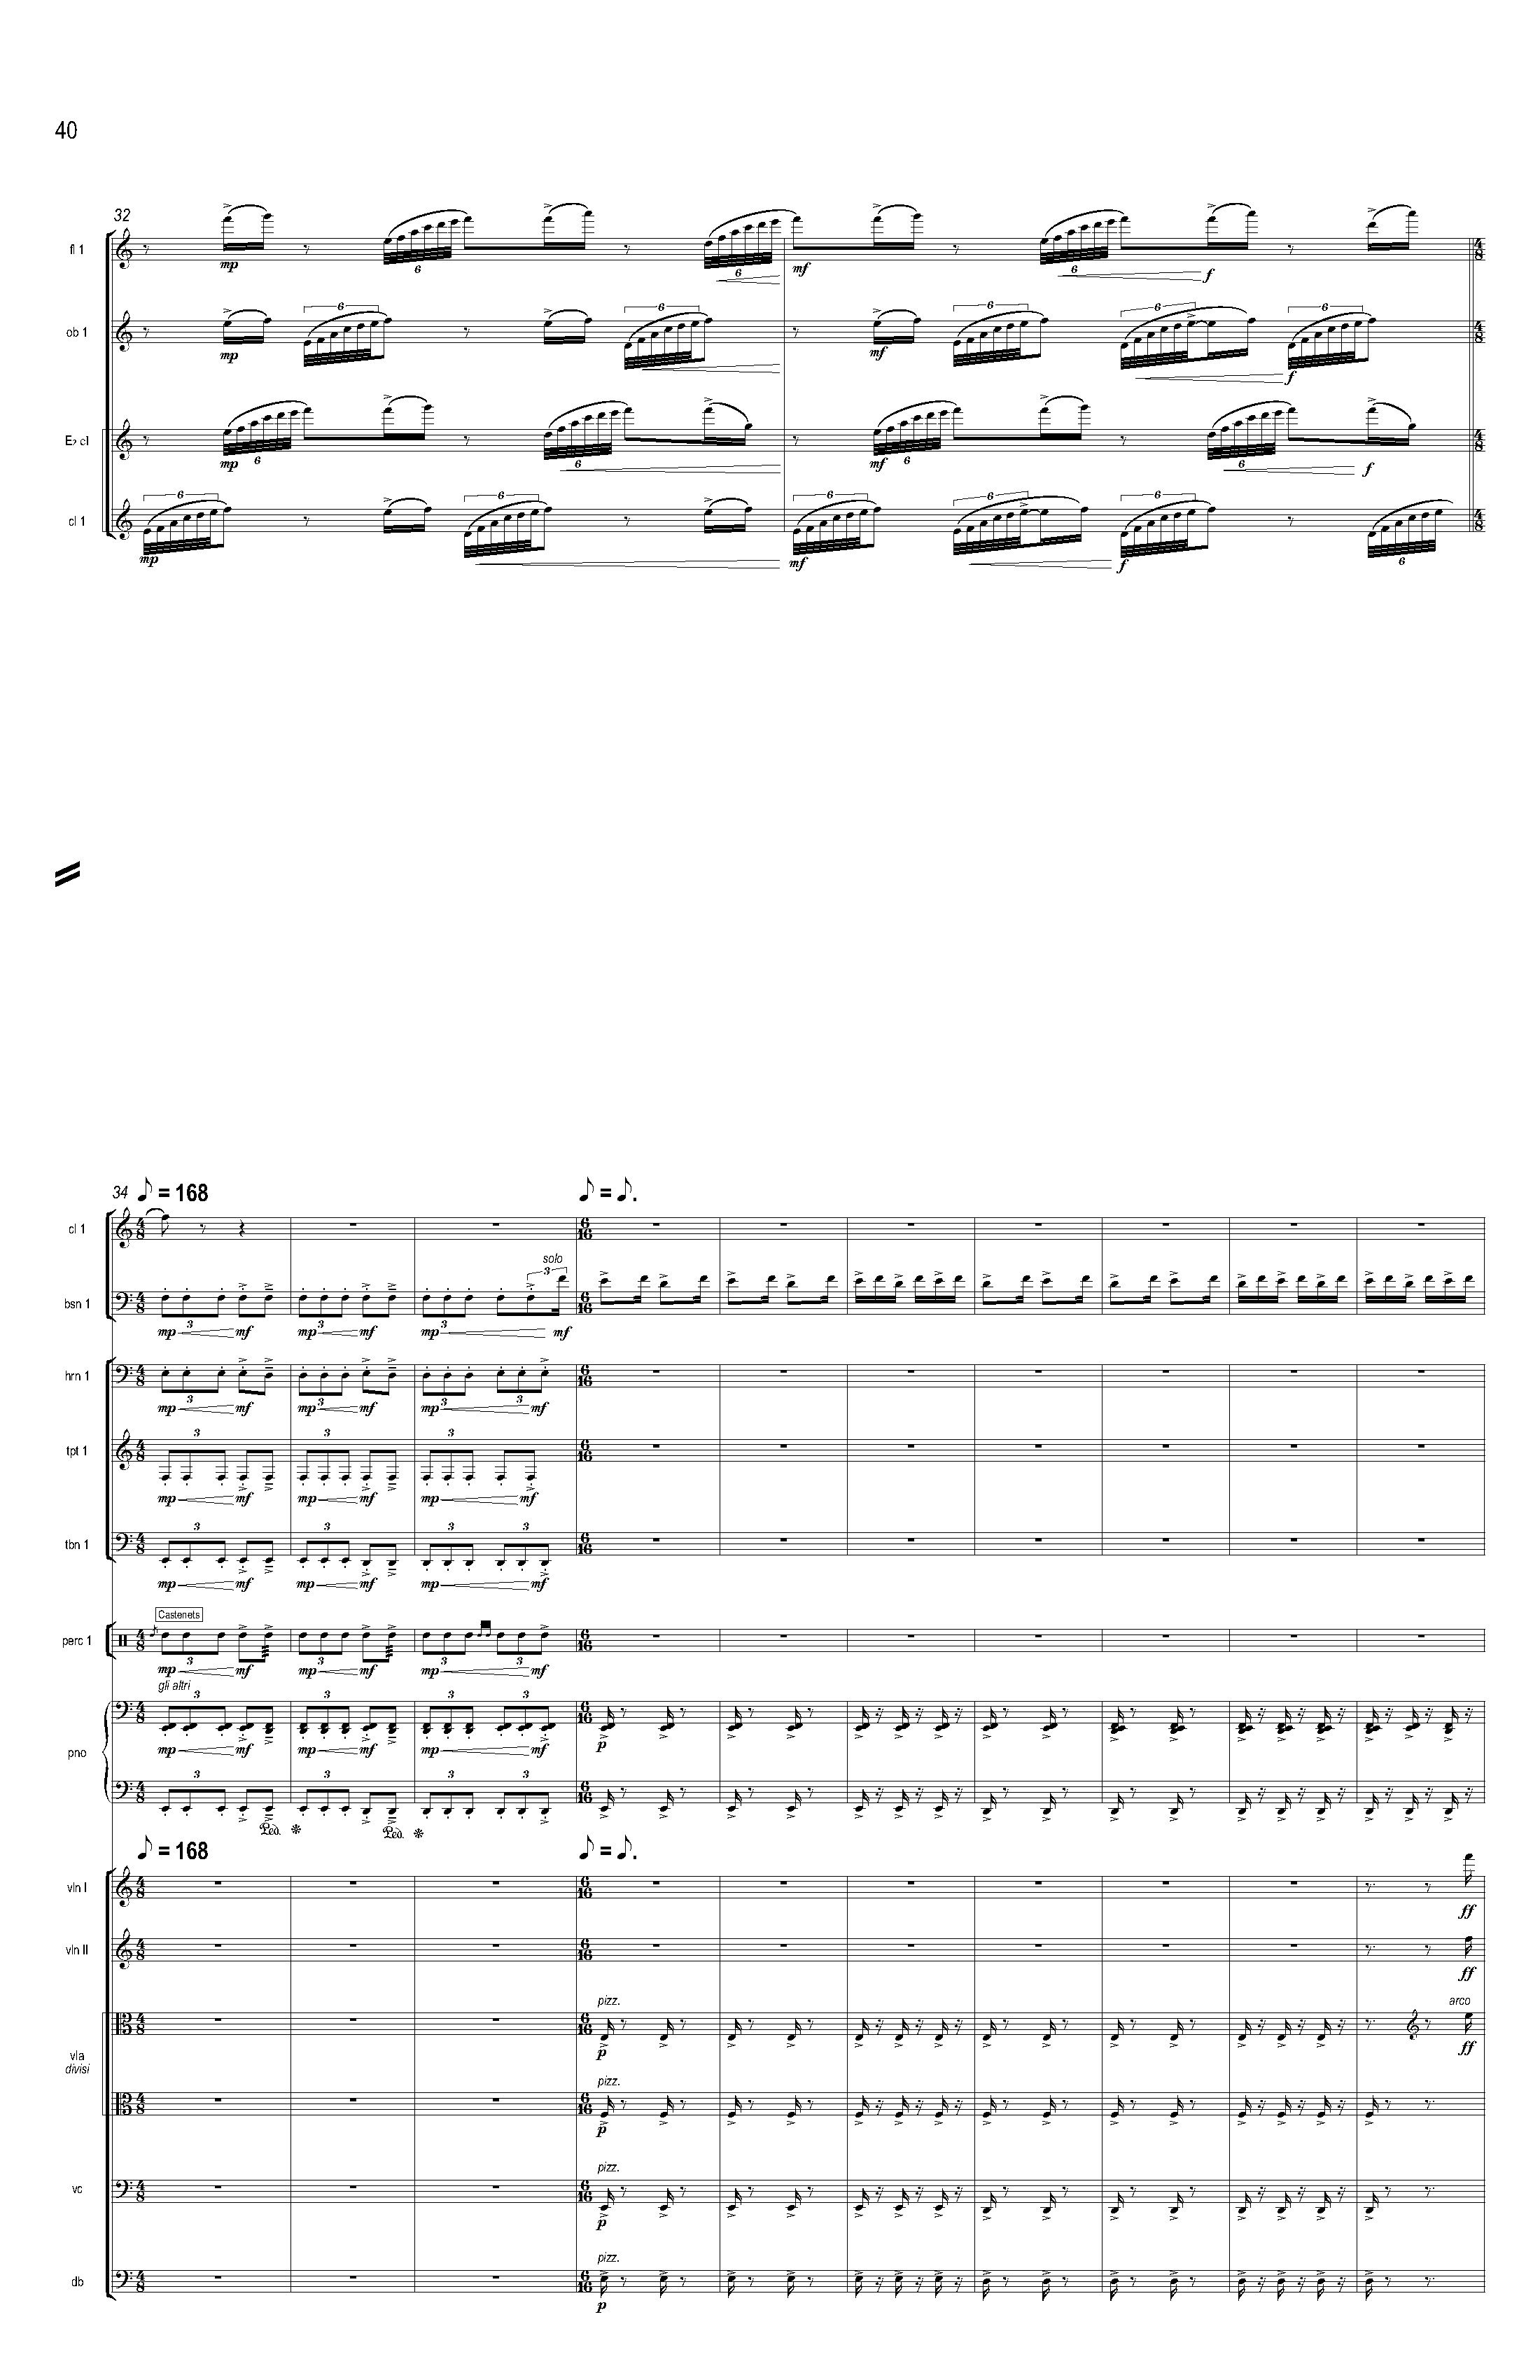 Ciach_Collective Uncommon REVISED_Full Score (Feb 2017)_Seite_46.jpg